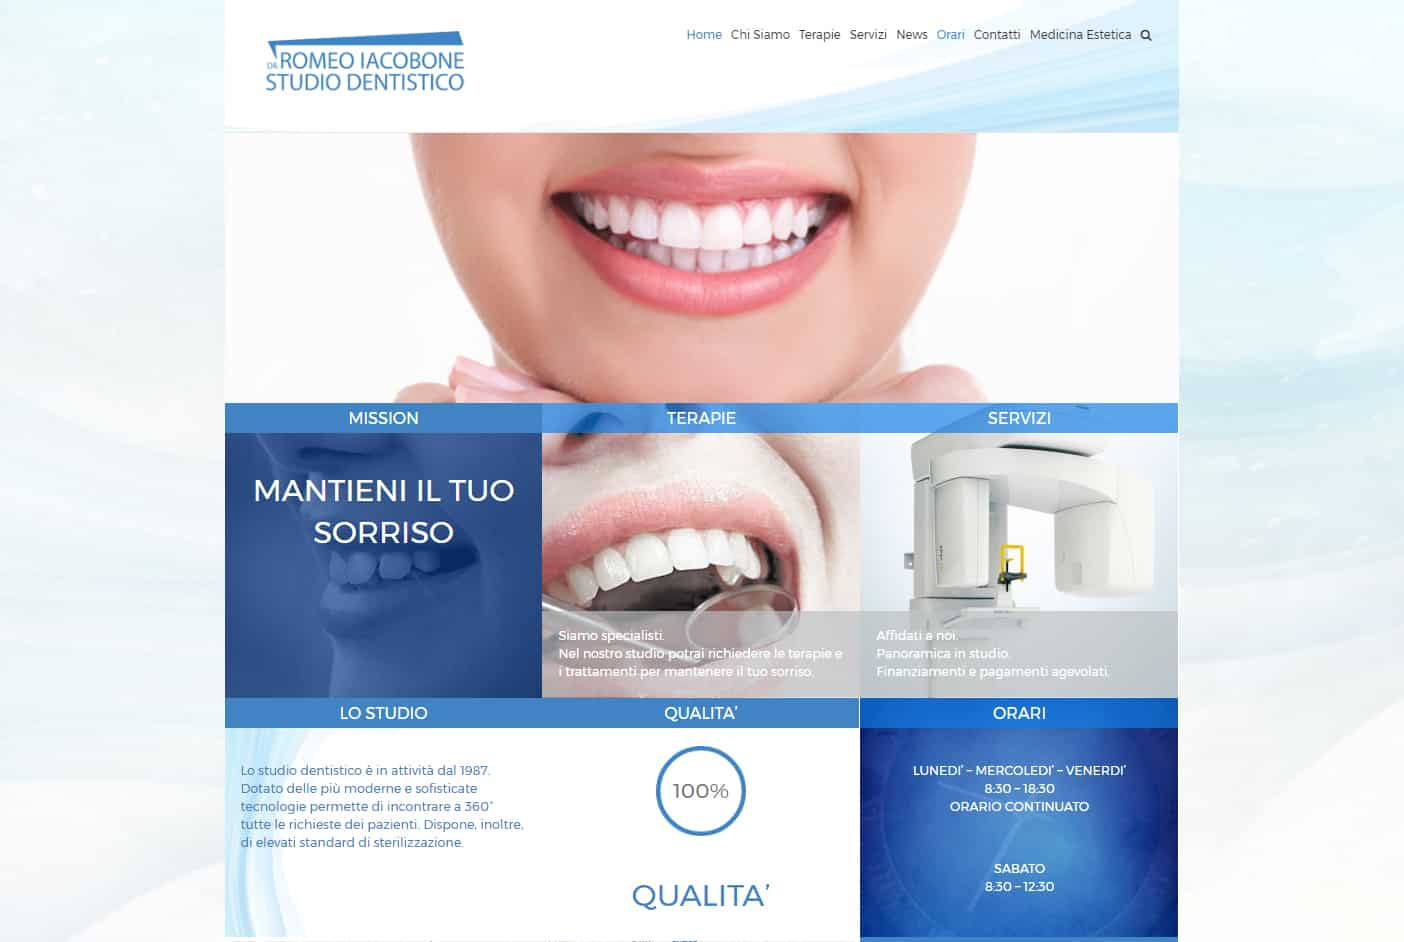 "Gestione sito web Studio Dentistico Romeo Iacobone Dr. e social media management Dal 2017 web design, gestione aggiornamento sito web e social media management dello Studio Dentistico Romeo Iacobone Dr. http://www.studiodentisticoiacobone.it/ www.pigikappa.com PiGiKappa.com Your Digital Partner ""We Share Everything"" #share #pgk #pigikappa #pigikappa.com #webmaintenance #socialmedia #management #social"